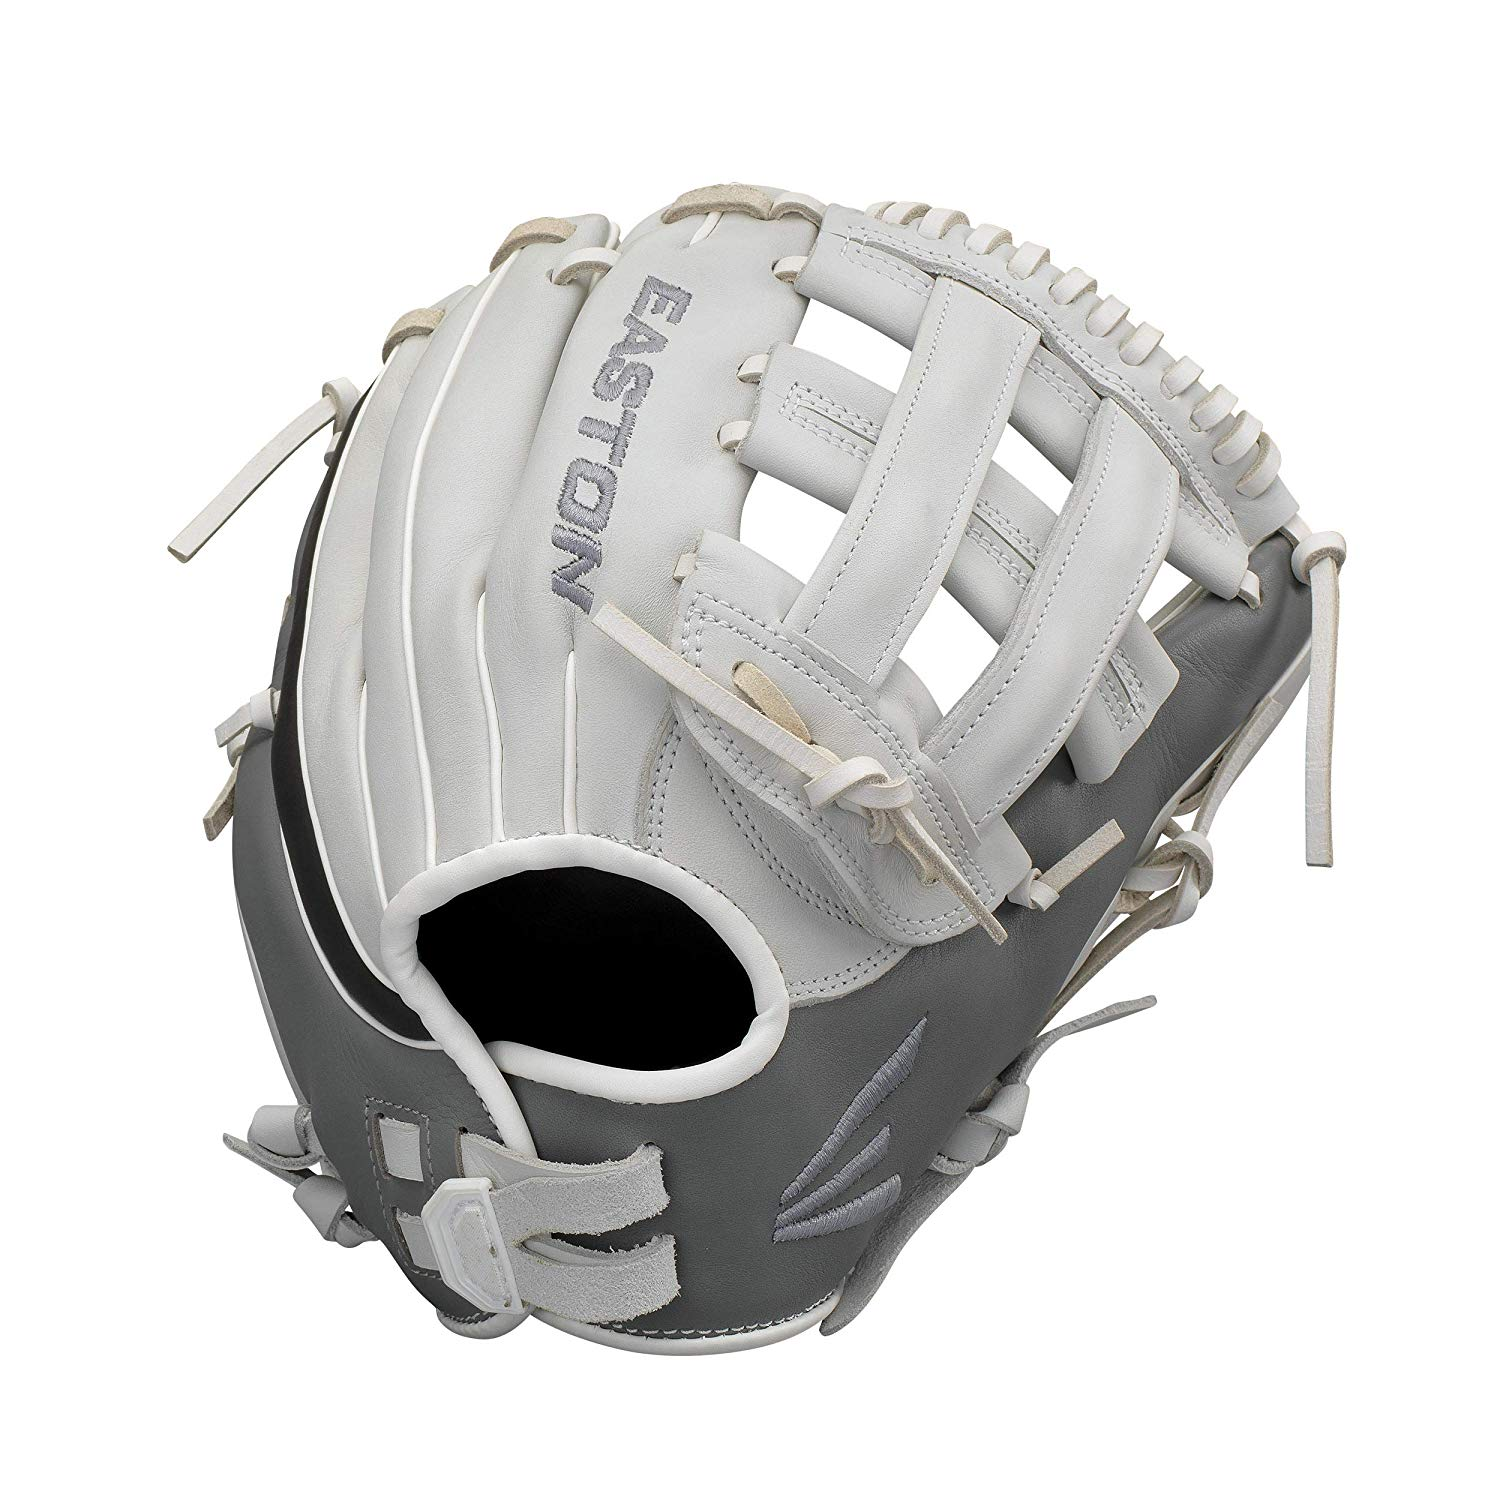 easton-ghost-fast-pitch-softball-glove-11-75-right-hand-throw GH1176FP-RightHandThrow  628412269978 Premium Steer USA leather Quantum Closure SystemTM provides adjustable hand opening